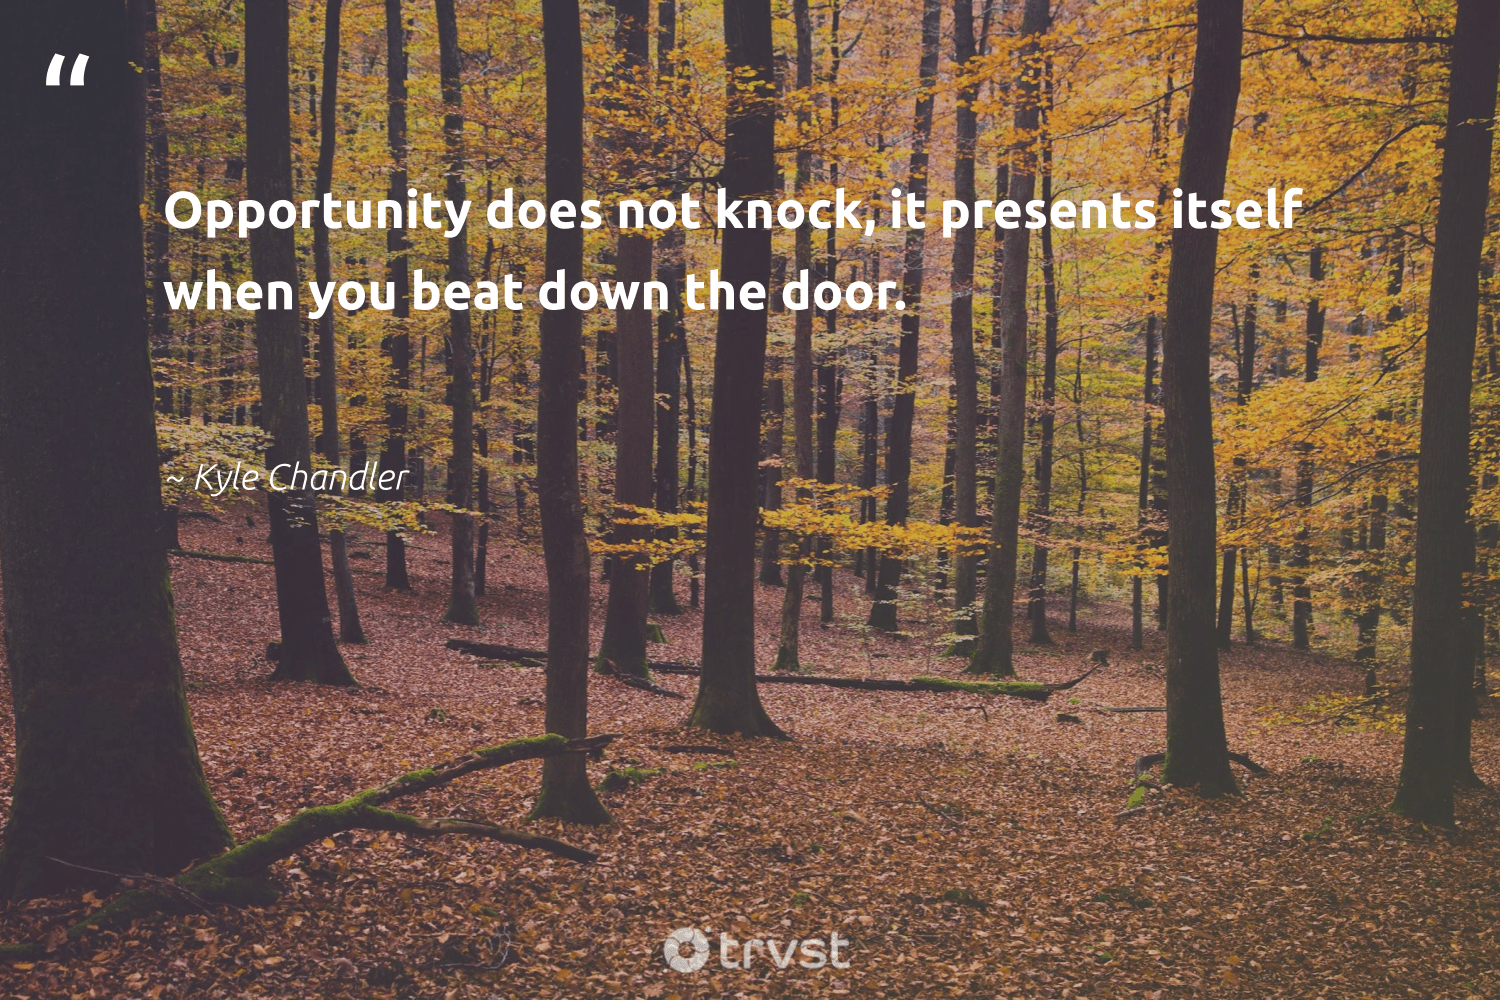 """Opportunity does not knock, it presents itself when you beat down the door.""  - Kyle Chandler #trvst #quotes #nevergiveup #planetearthfirst #softskills #collectiveaction #futureofwork #impact #begreat #dotherightthing #dogood #dosomething"